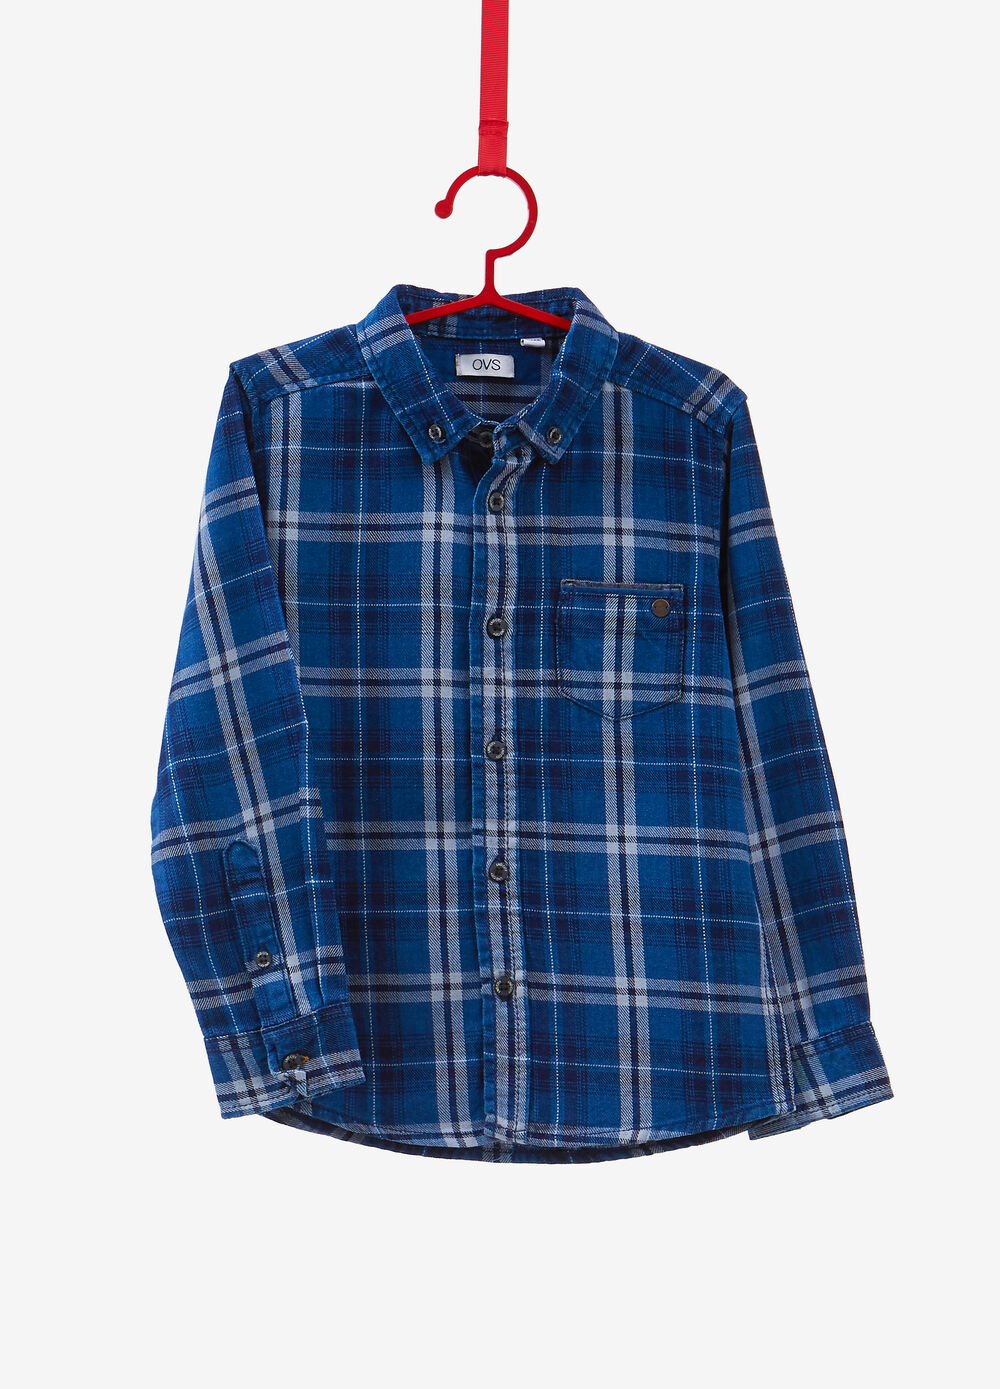 100% cotton shirt with check pattern